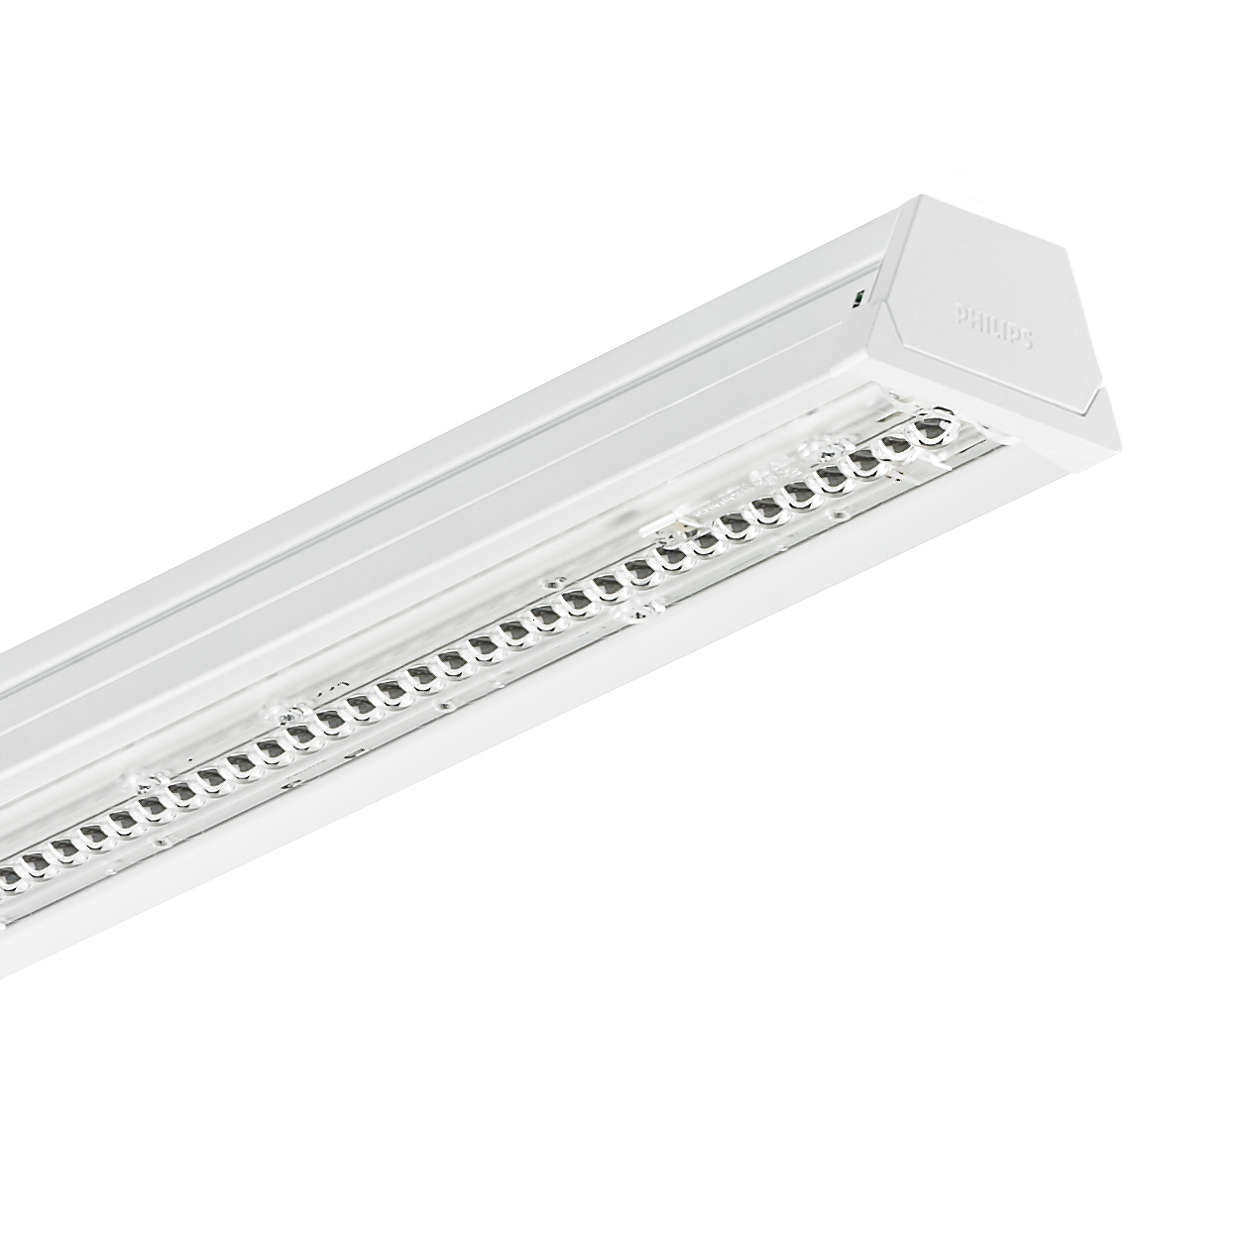 CoreLine Trunking – the clear choice for LED